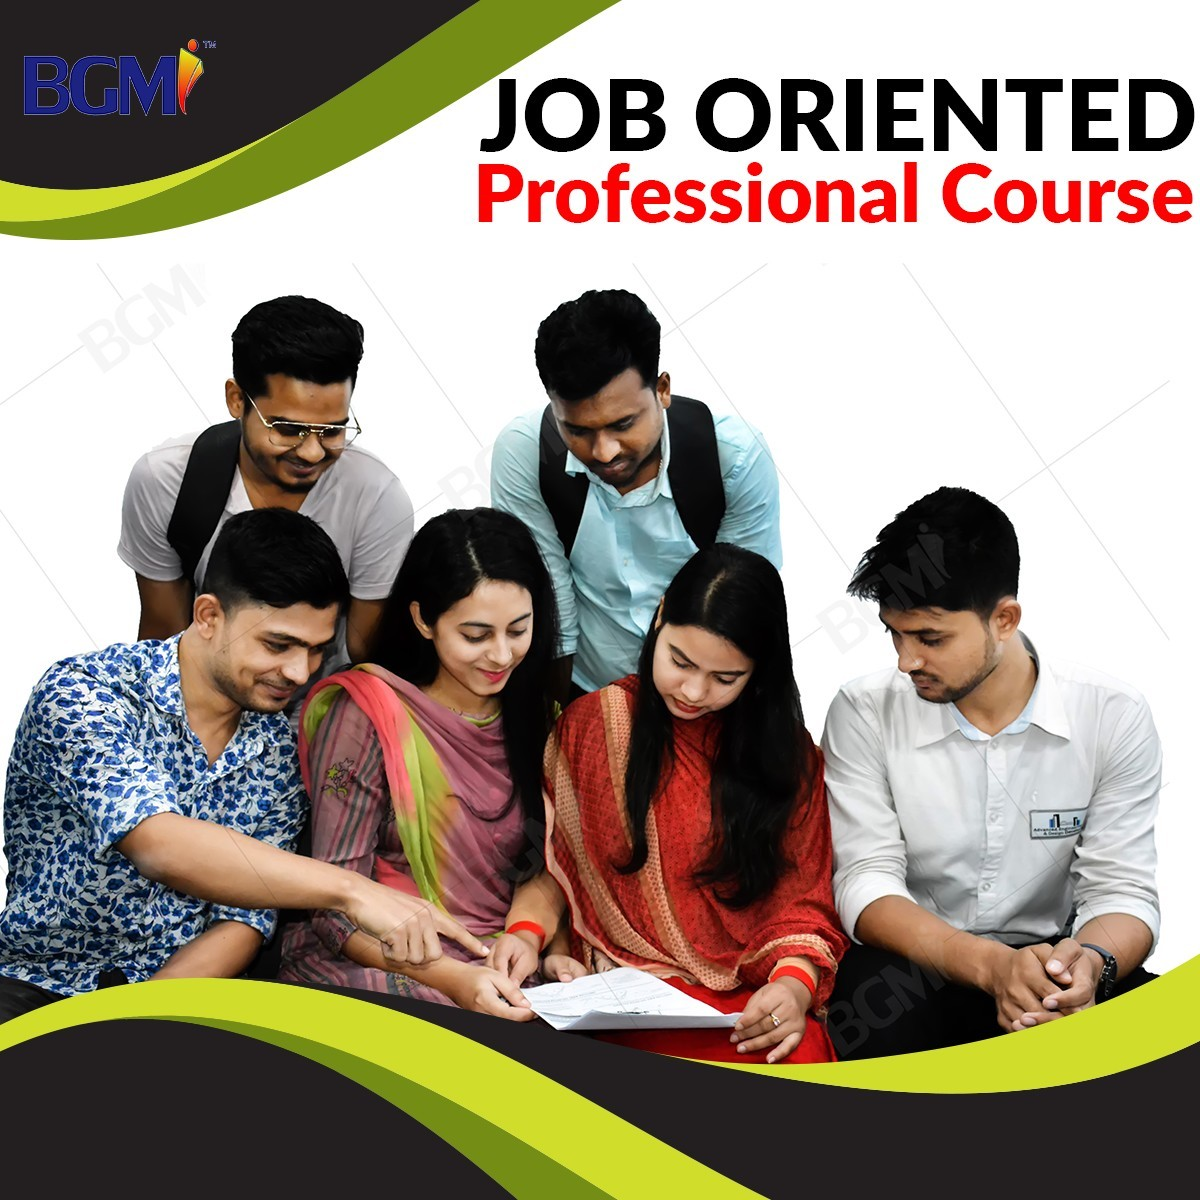 Job Oriented Professional Course